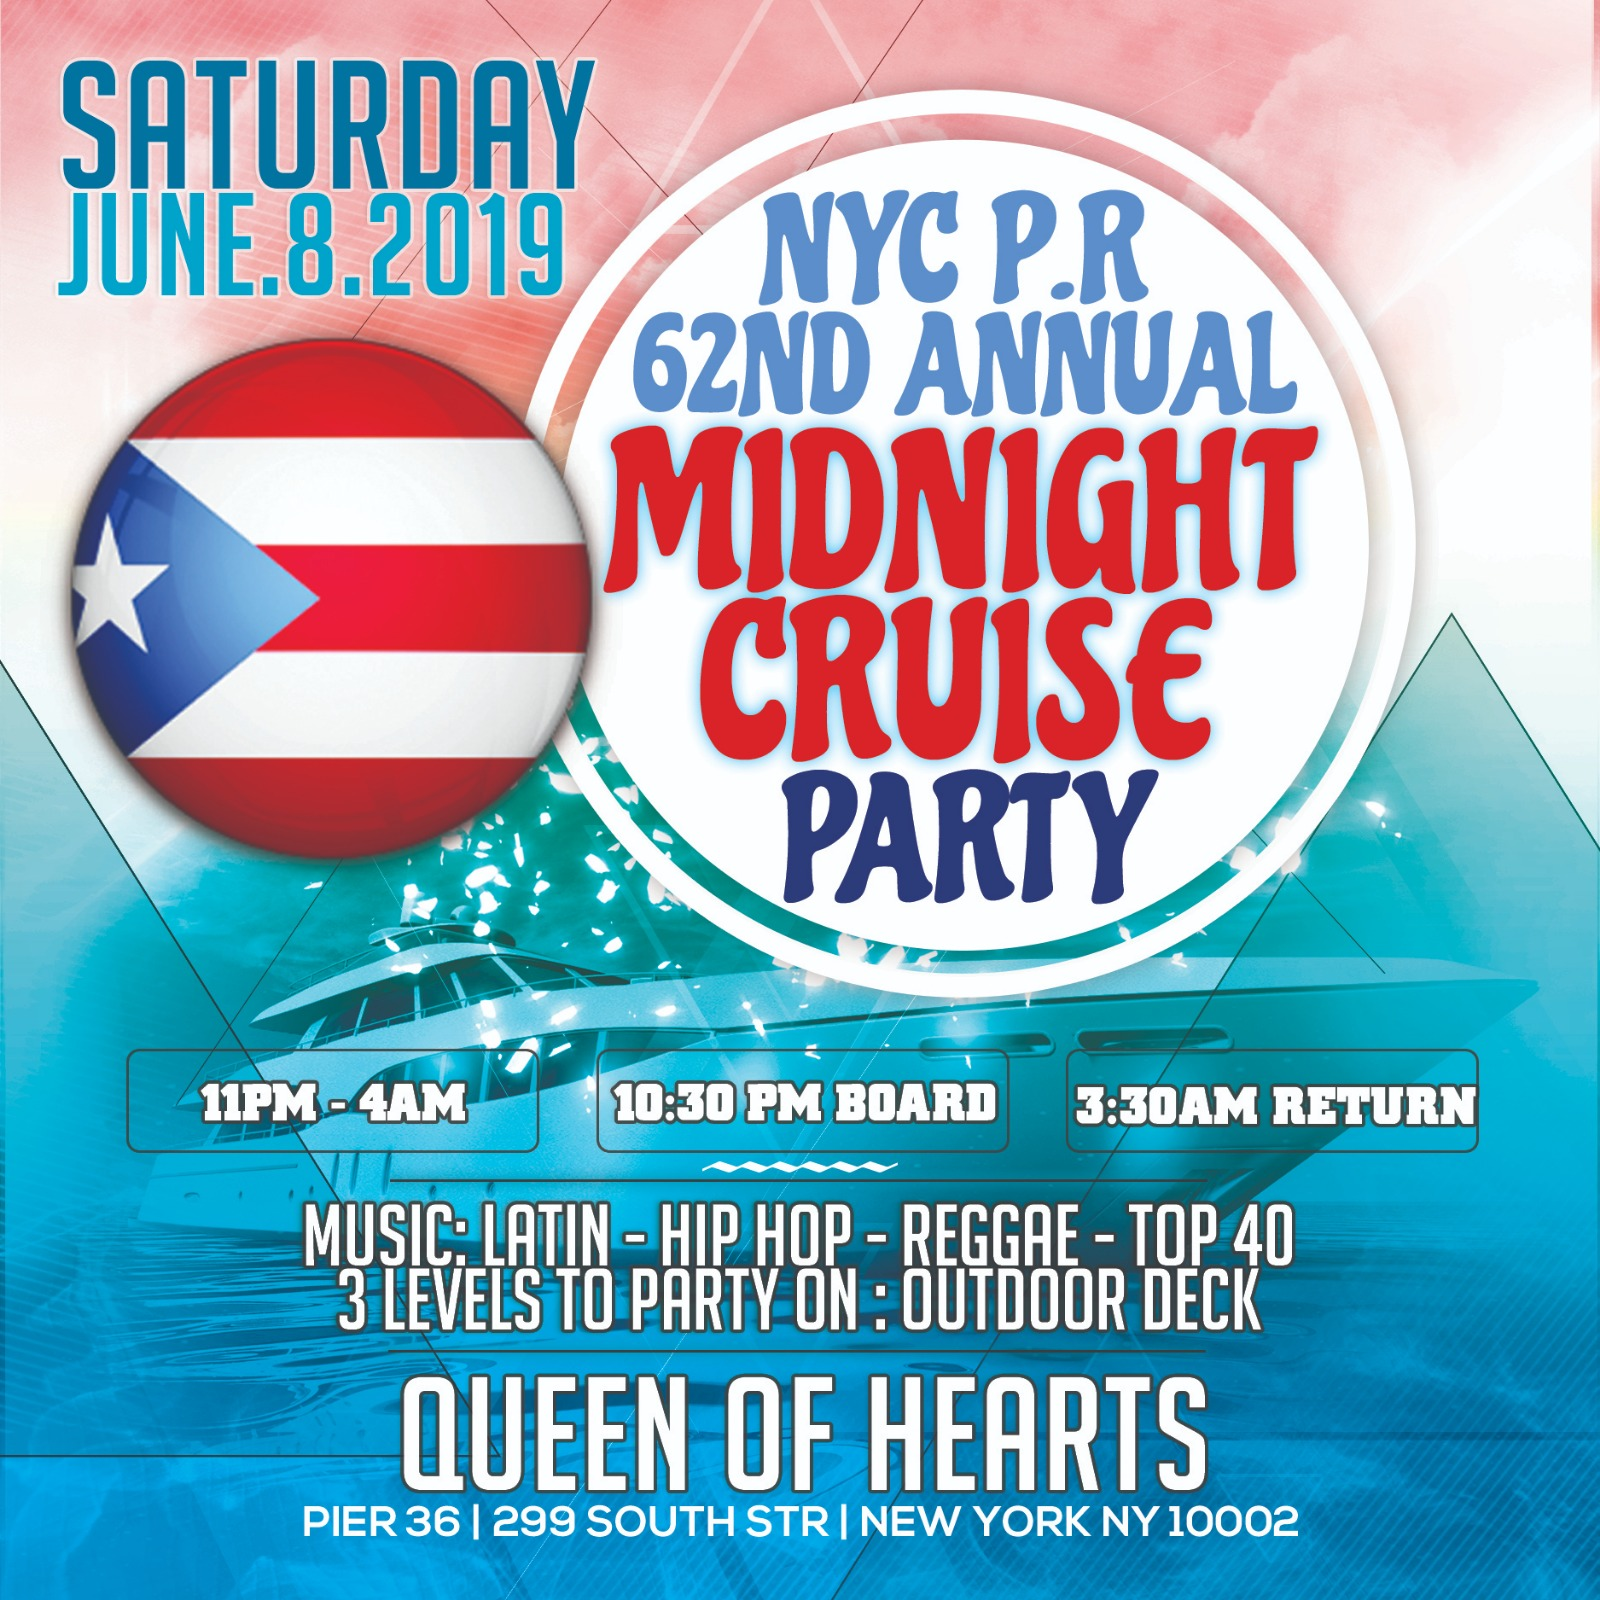 Midnight Cruise NYC Queen of Hearts Boat